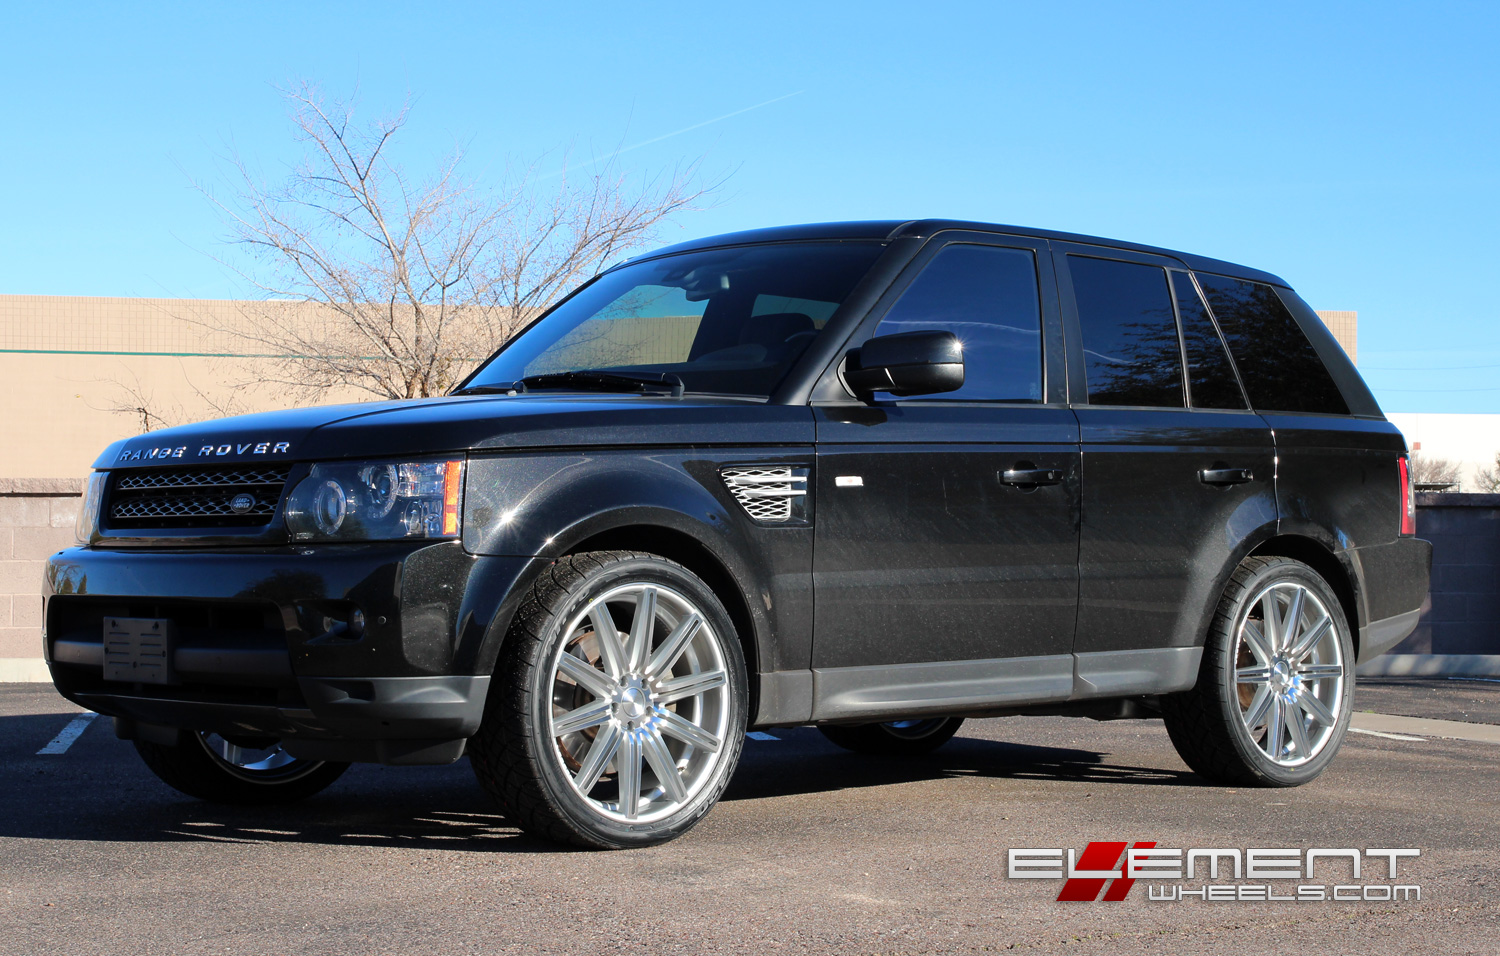 Range Rover L322 22 Inch Wheels >> 22 inch Vossen CV4 Silver Machined on 2012 Range Rover Sport w/ Specs | Element Wheels